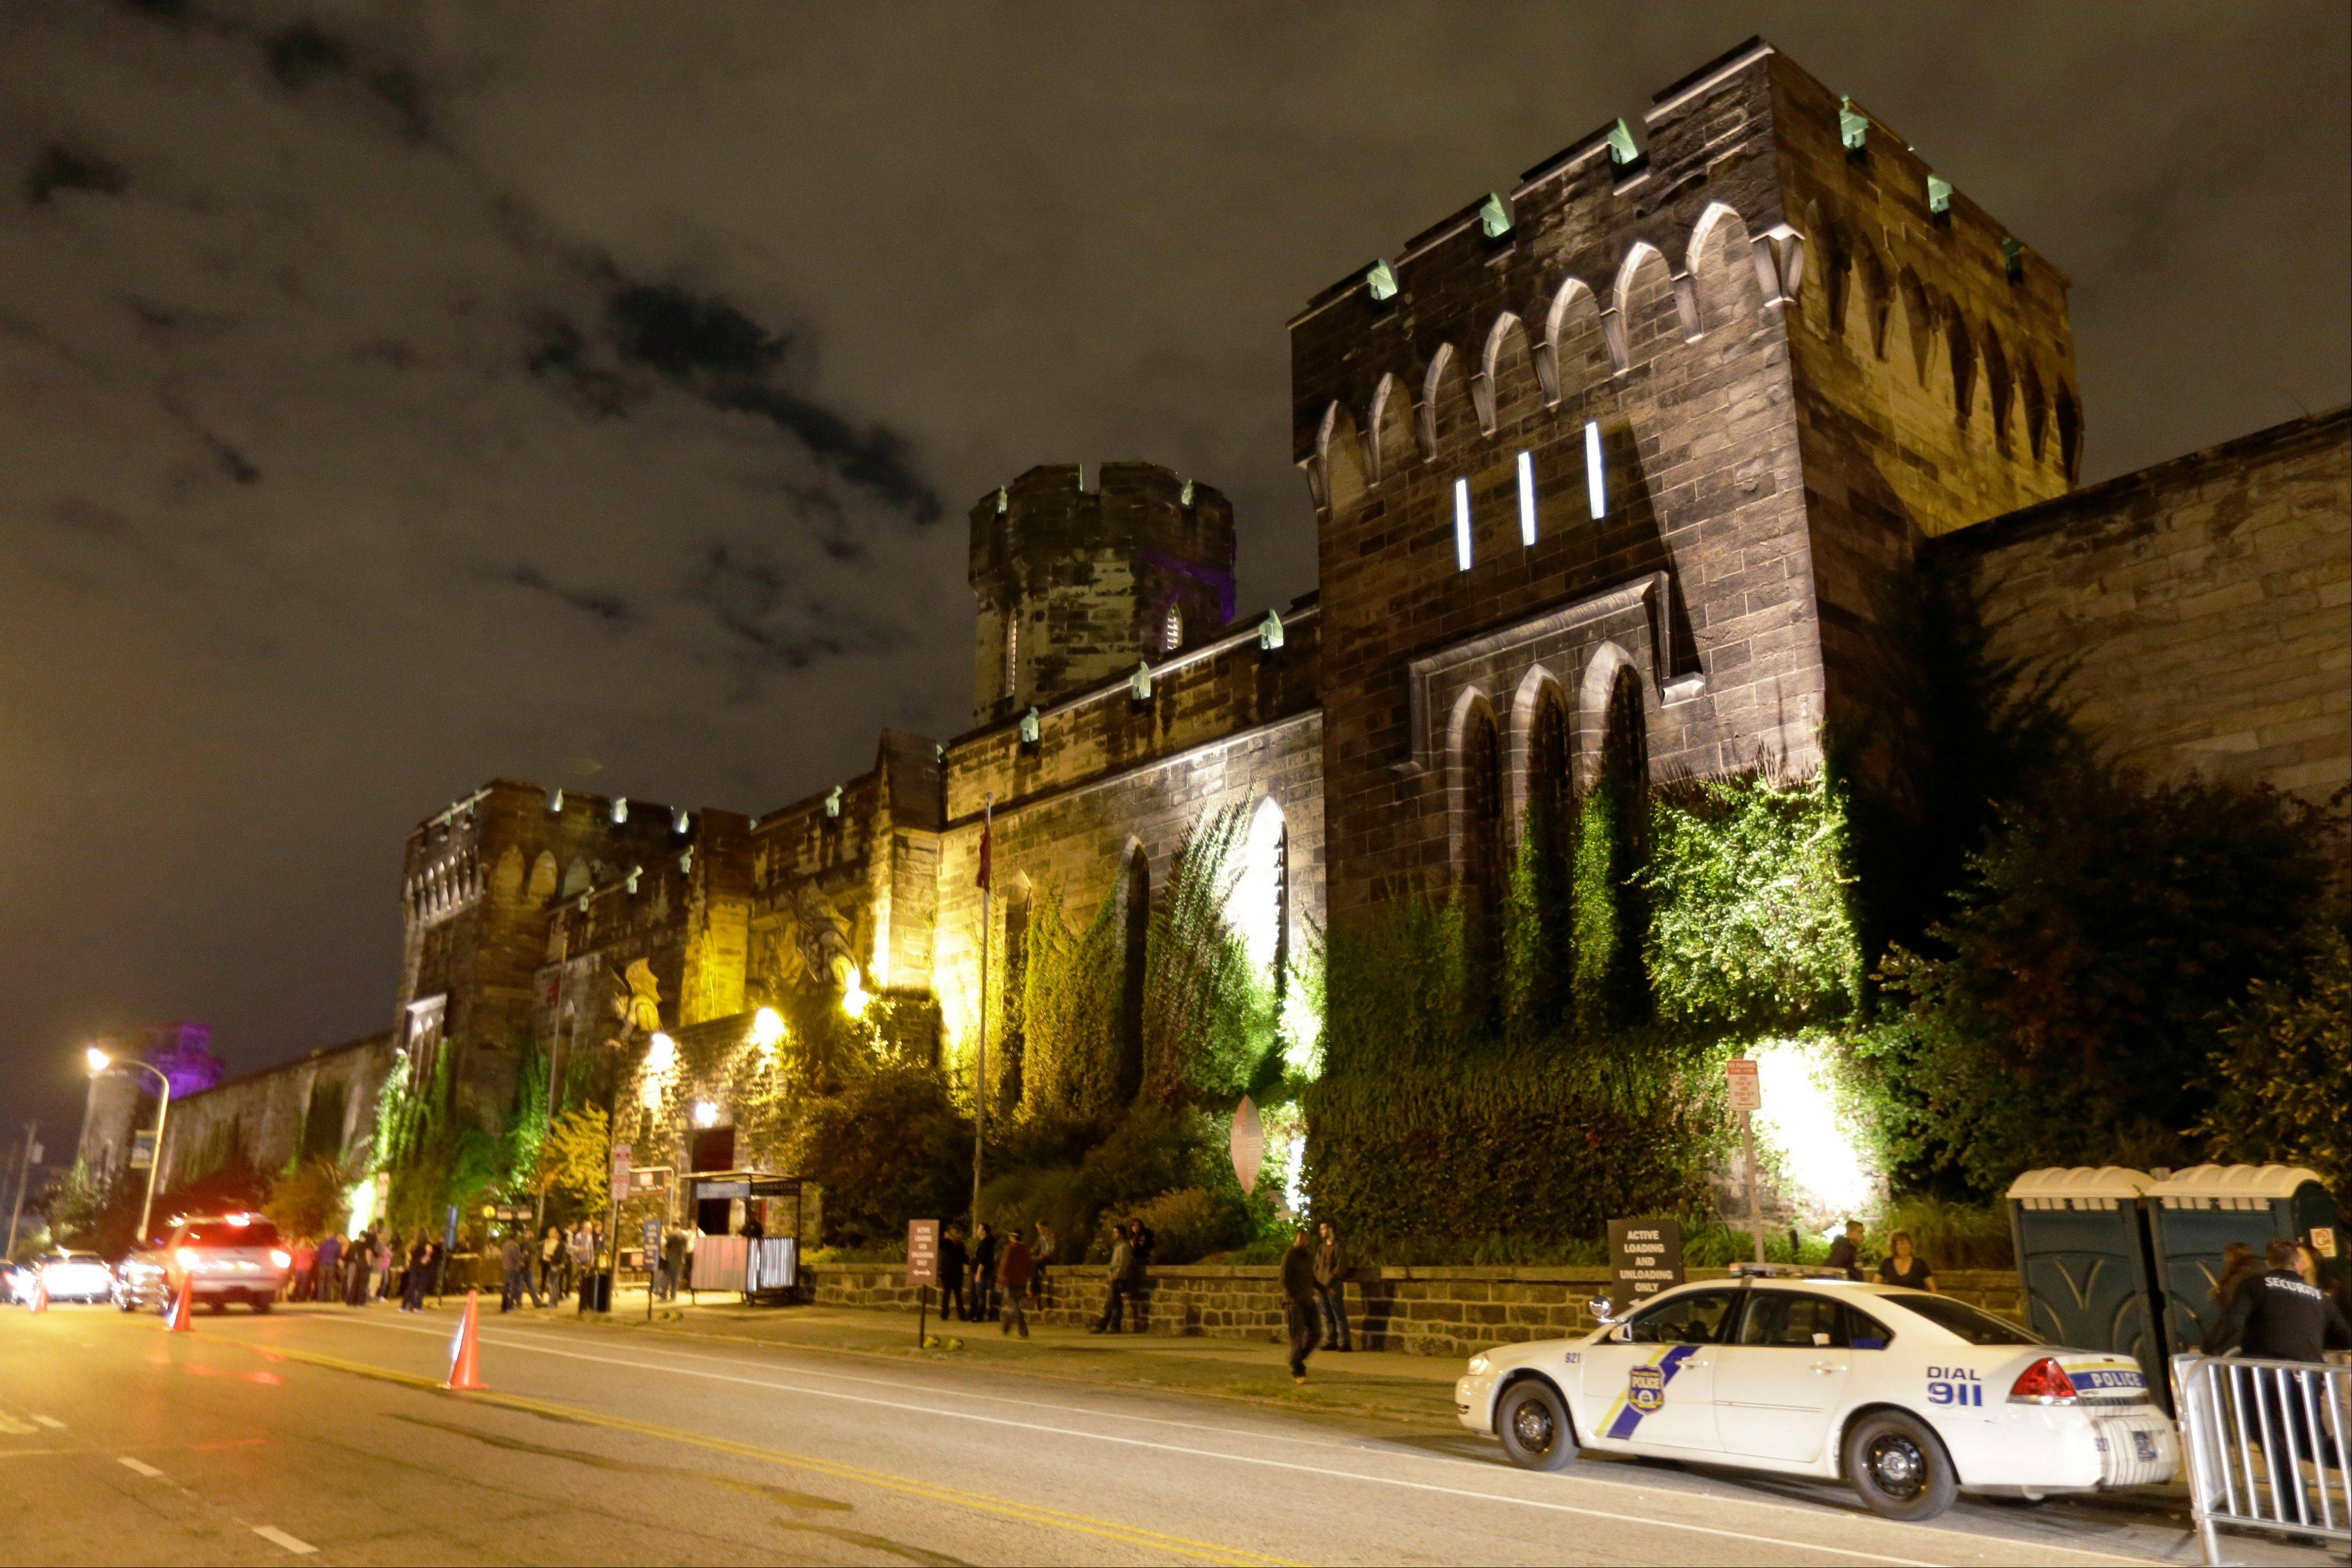 Eastern State Penitentiary in Philadelphia is illuminated for its Halloween haunted house, Terror Behind the Walls. The penitentiary took in its first inmate in 1829, closed in 1971 and reopened as a museum in 1994. The haunted house is scheduled to run through Nov. 9.